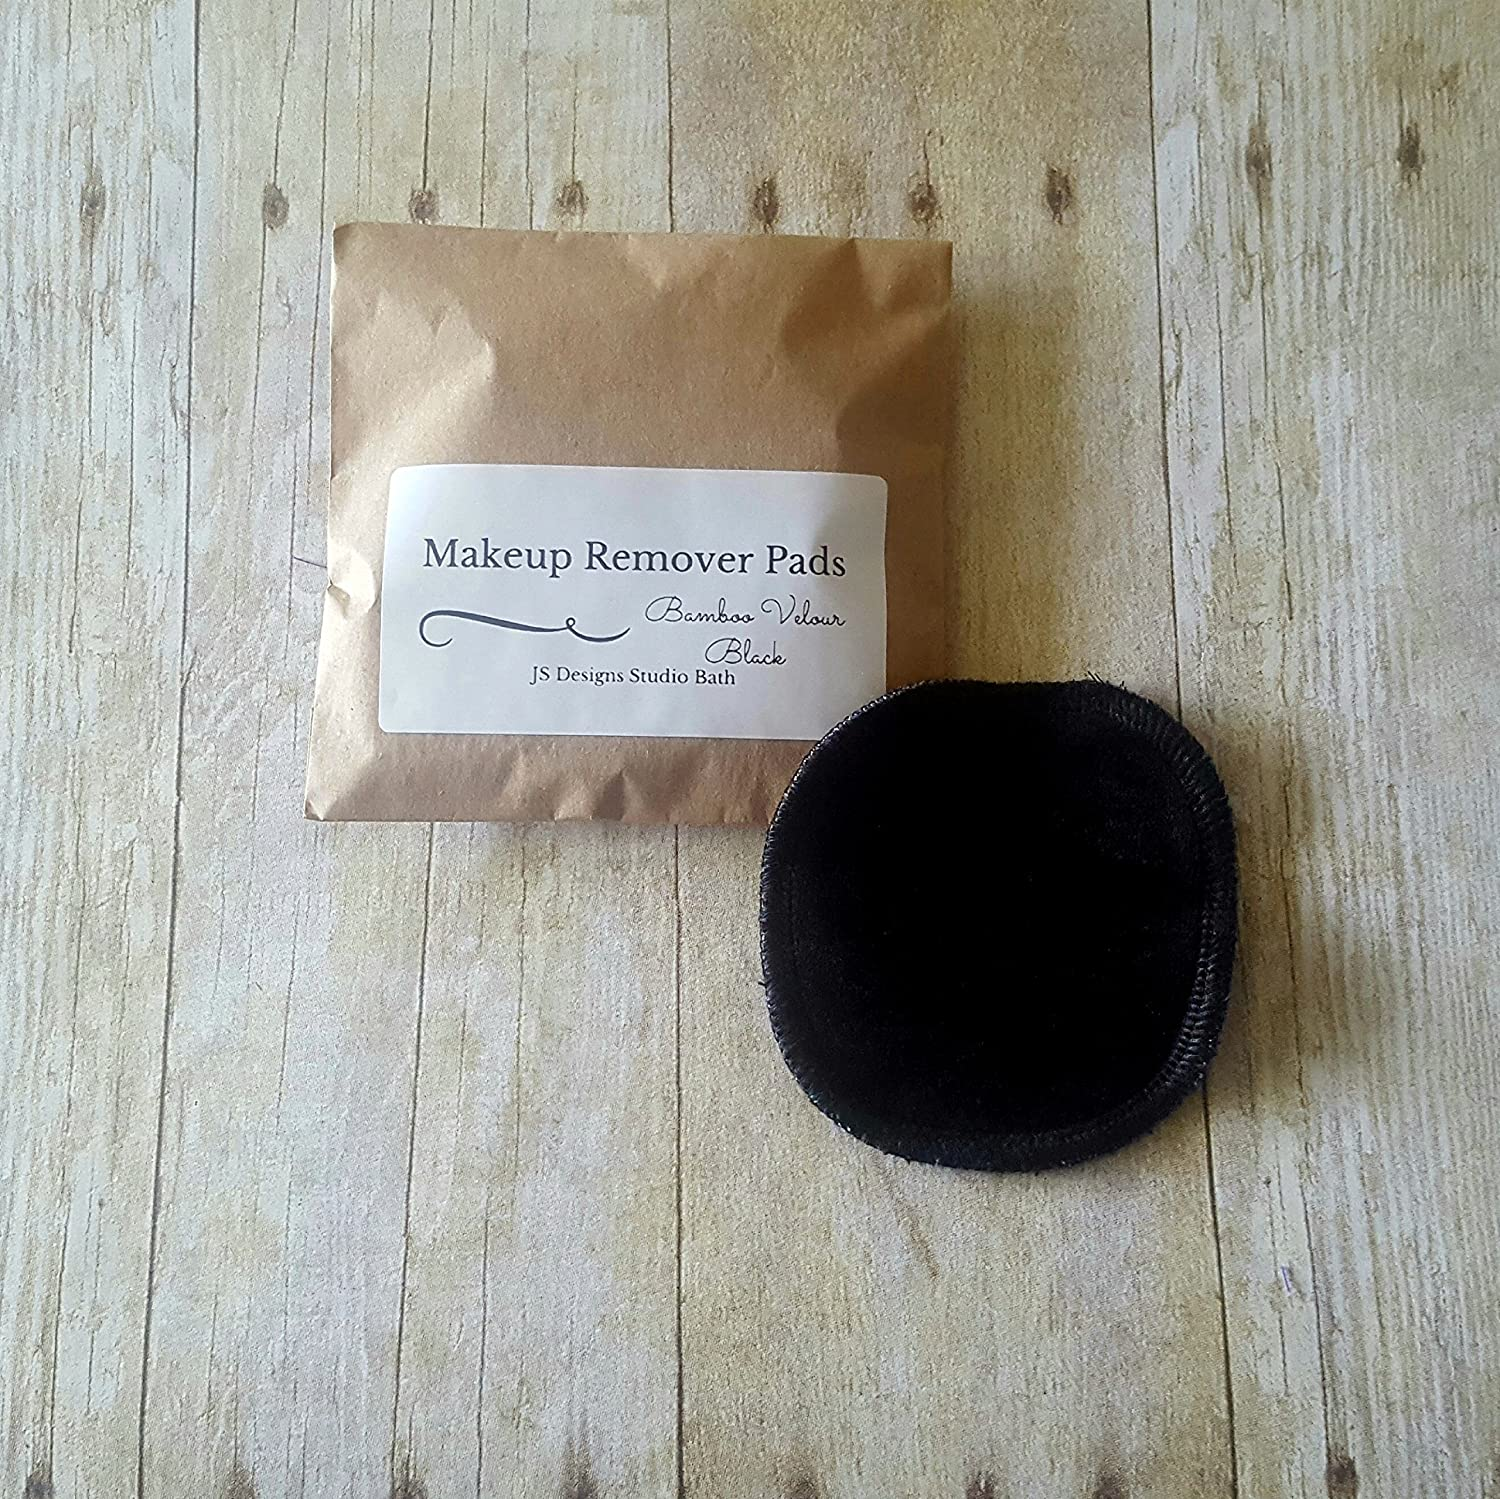 Black Bamboo Velour Reusable Makeup Remover Pads - Set of 5